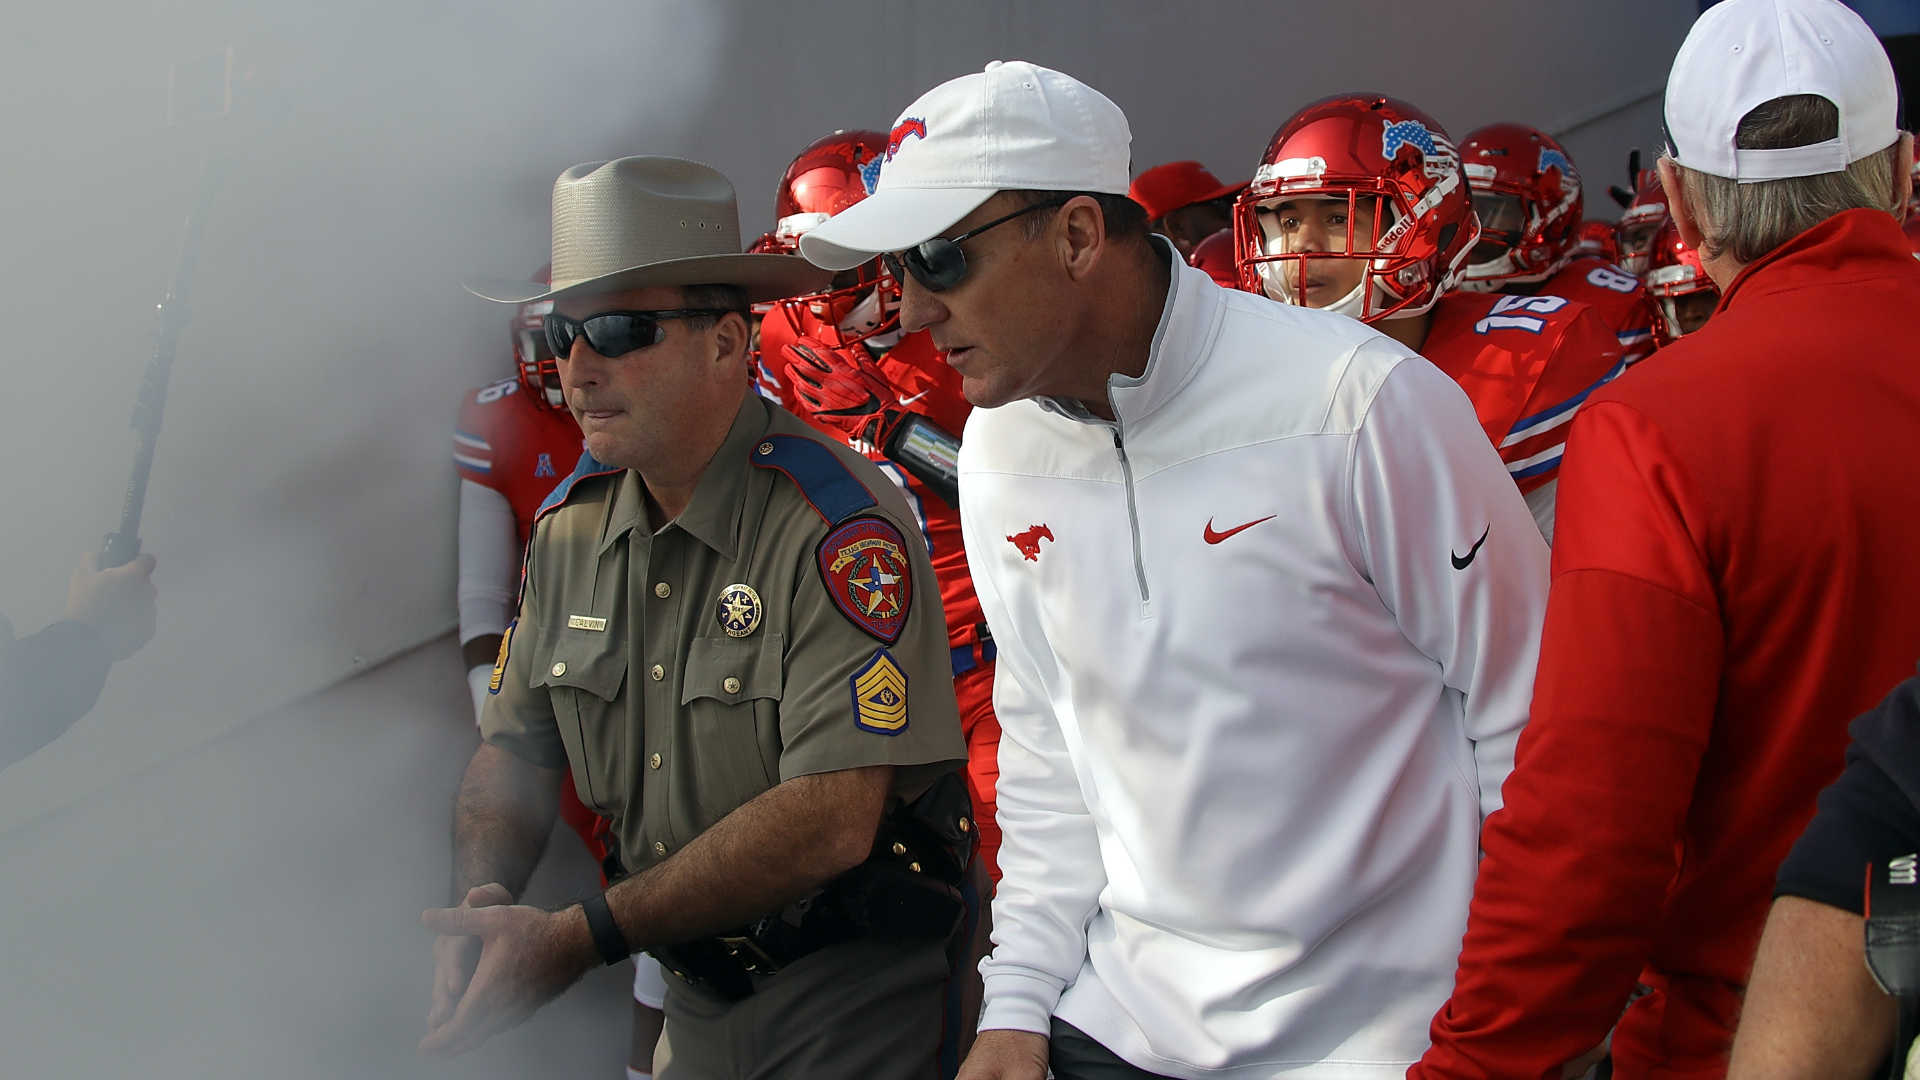 Arkansas hires SMU's Morris as head coach